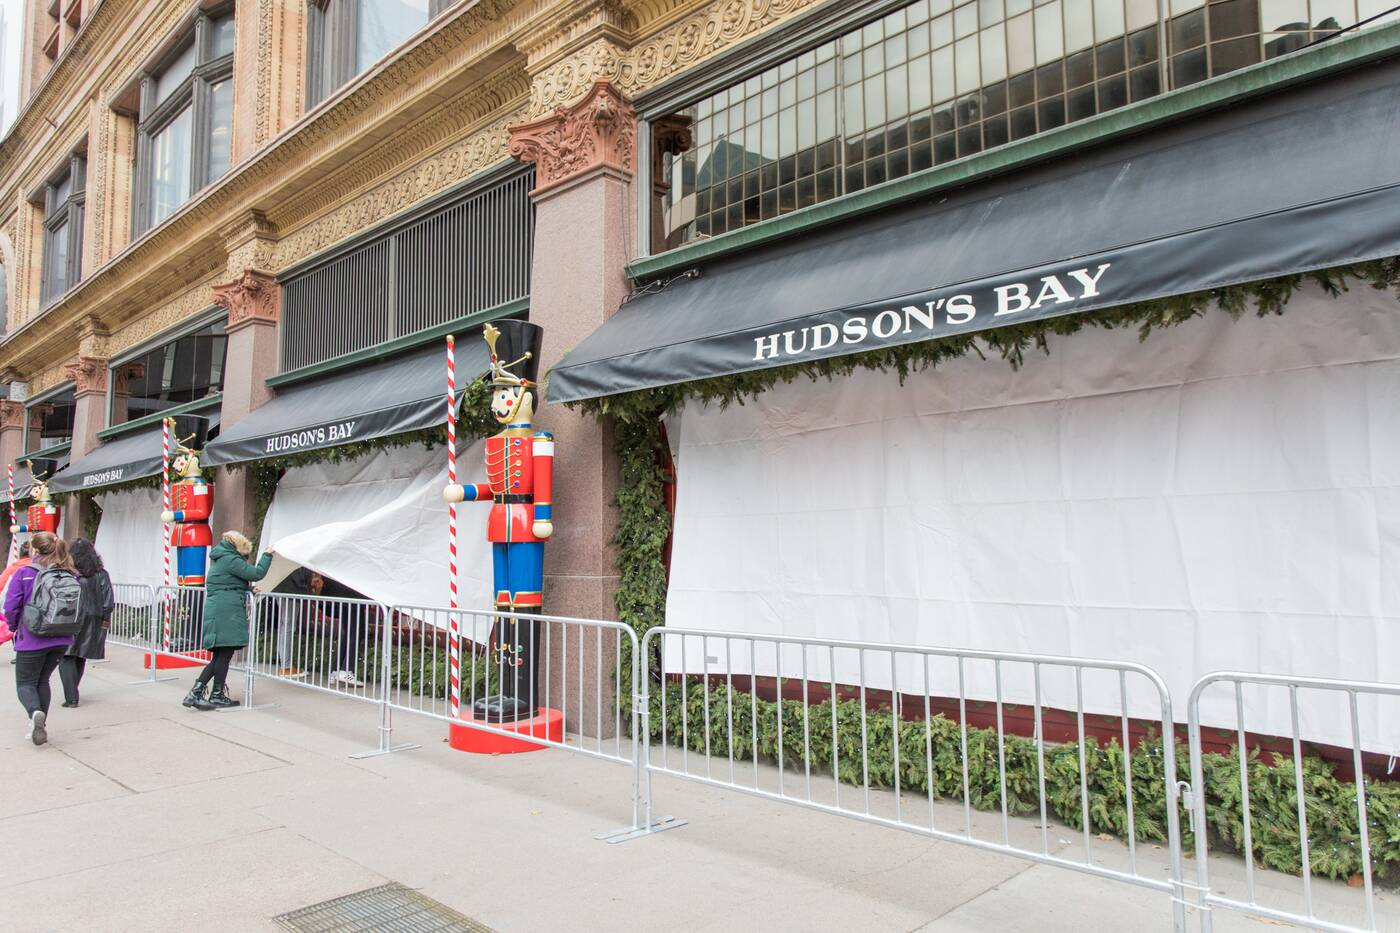 hudson's bay holiday window